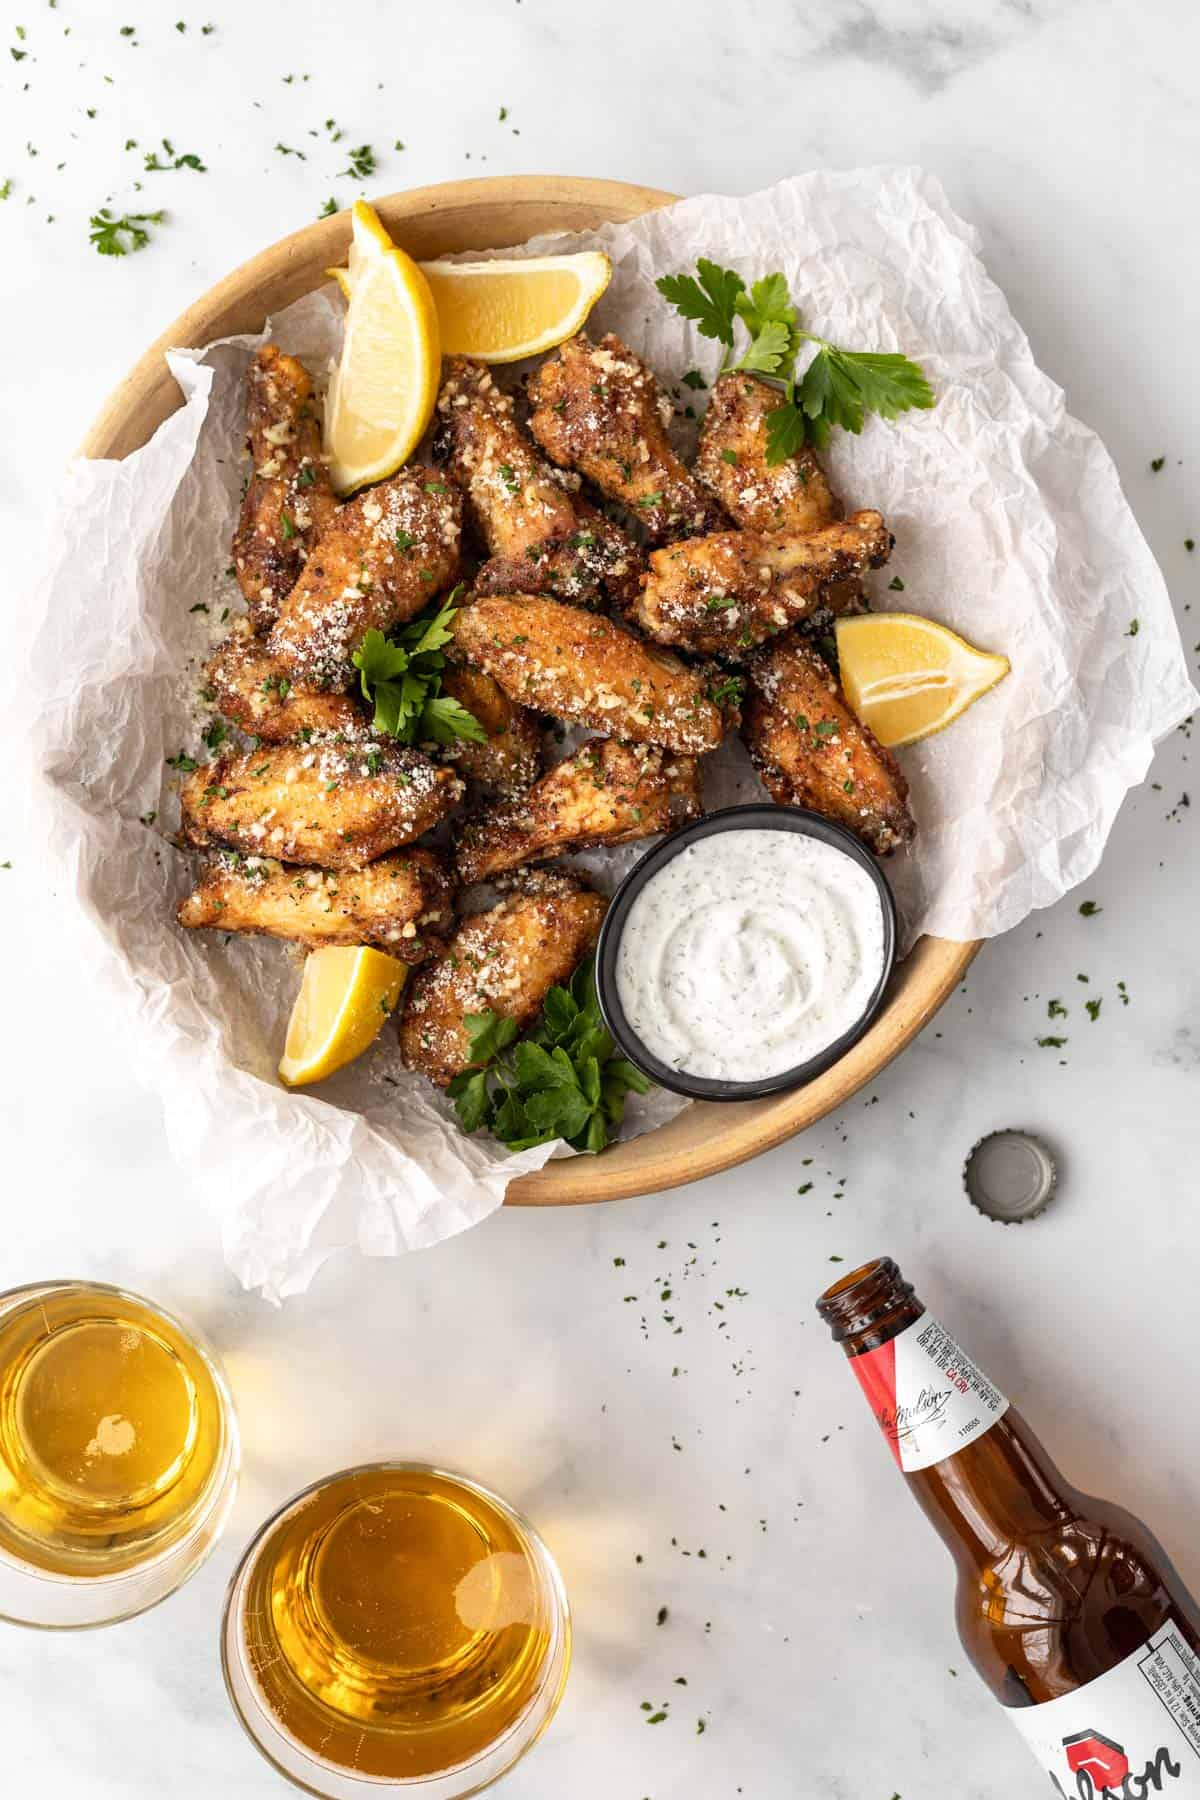 Air fryer parmesan garlic wings piled into a serving dish with a side of ranch, 2 glasses of beer, a beer bottle, and a bottle cap.